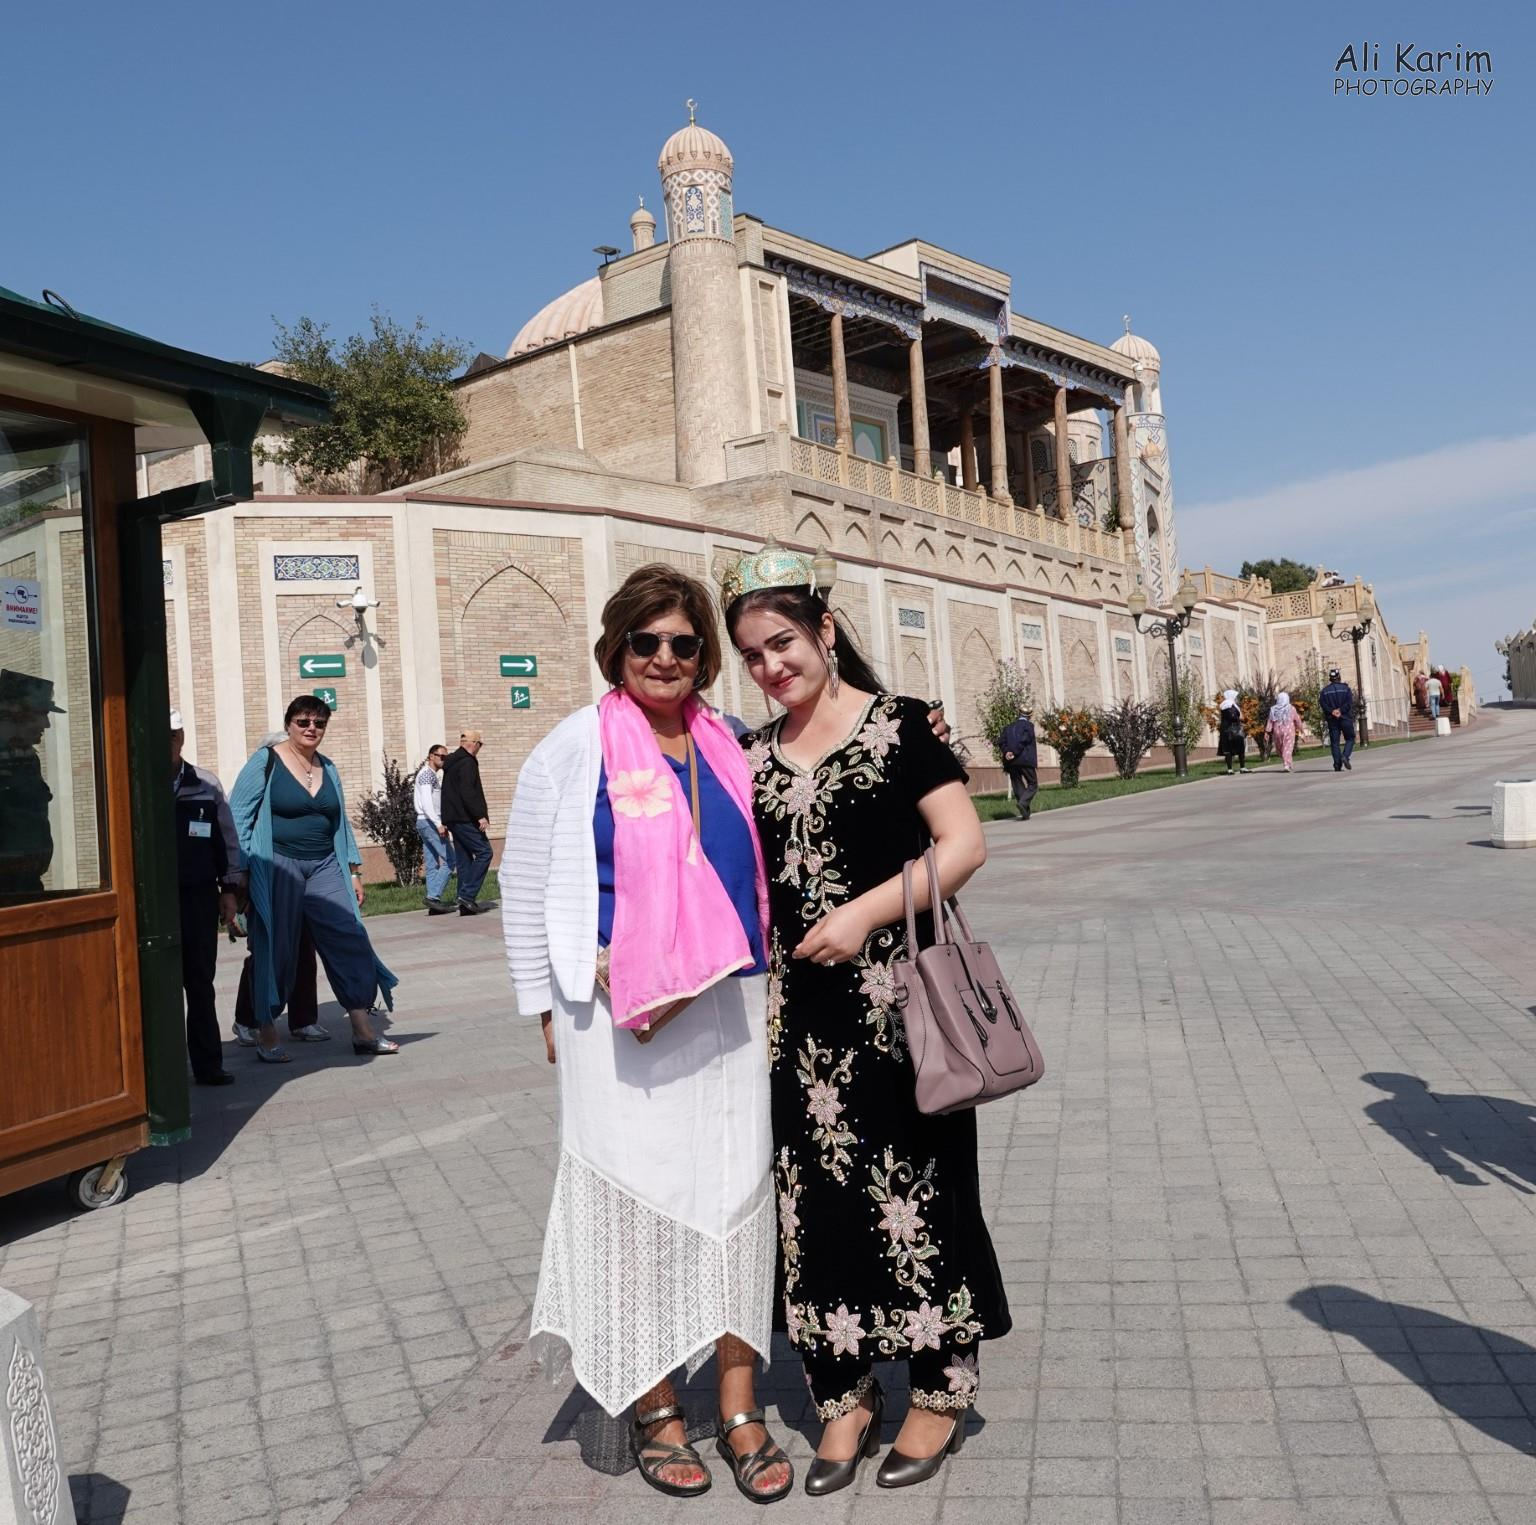 More Samarkand, Friendly locals; the building behind them is the Hazrati Hizr mosque and mausoleum of Islom Karmiov, the first president of Uzbekistan